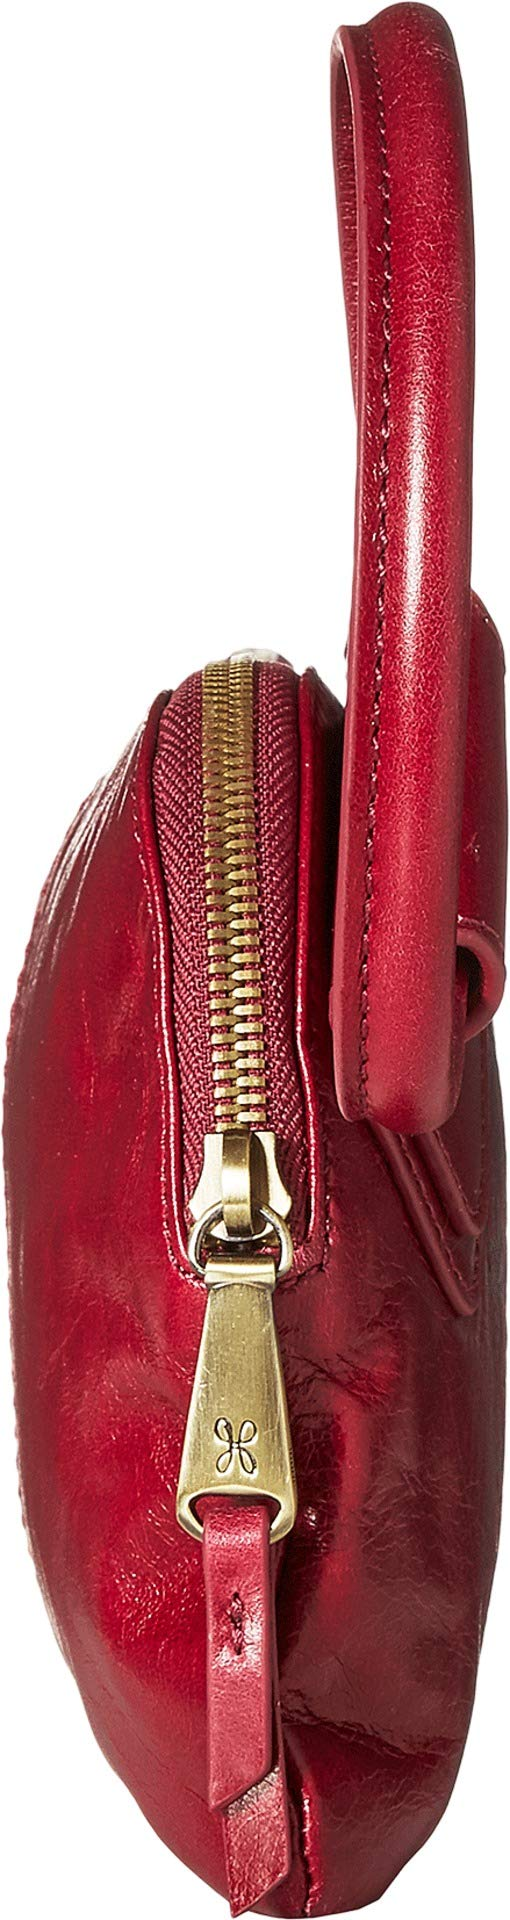 Hobo Women's Sable Ruby 1 One Size by HOBO (Image #3)